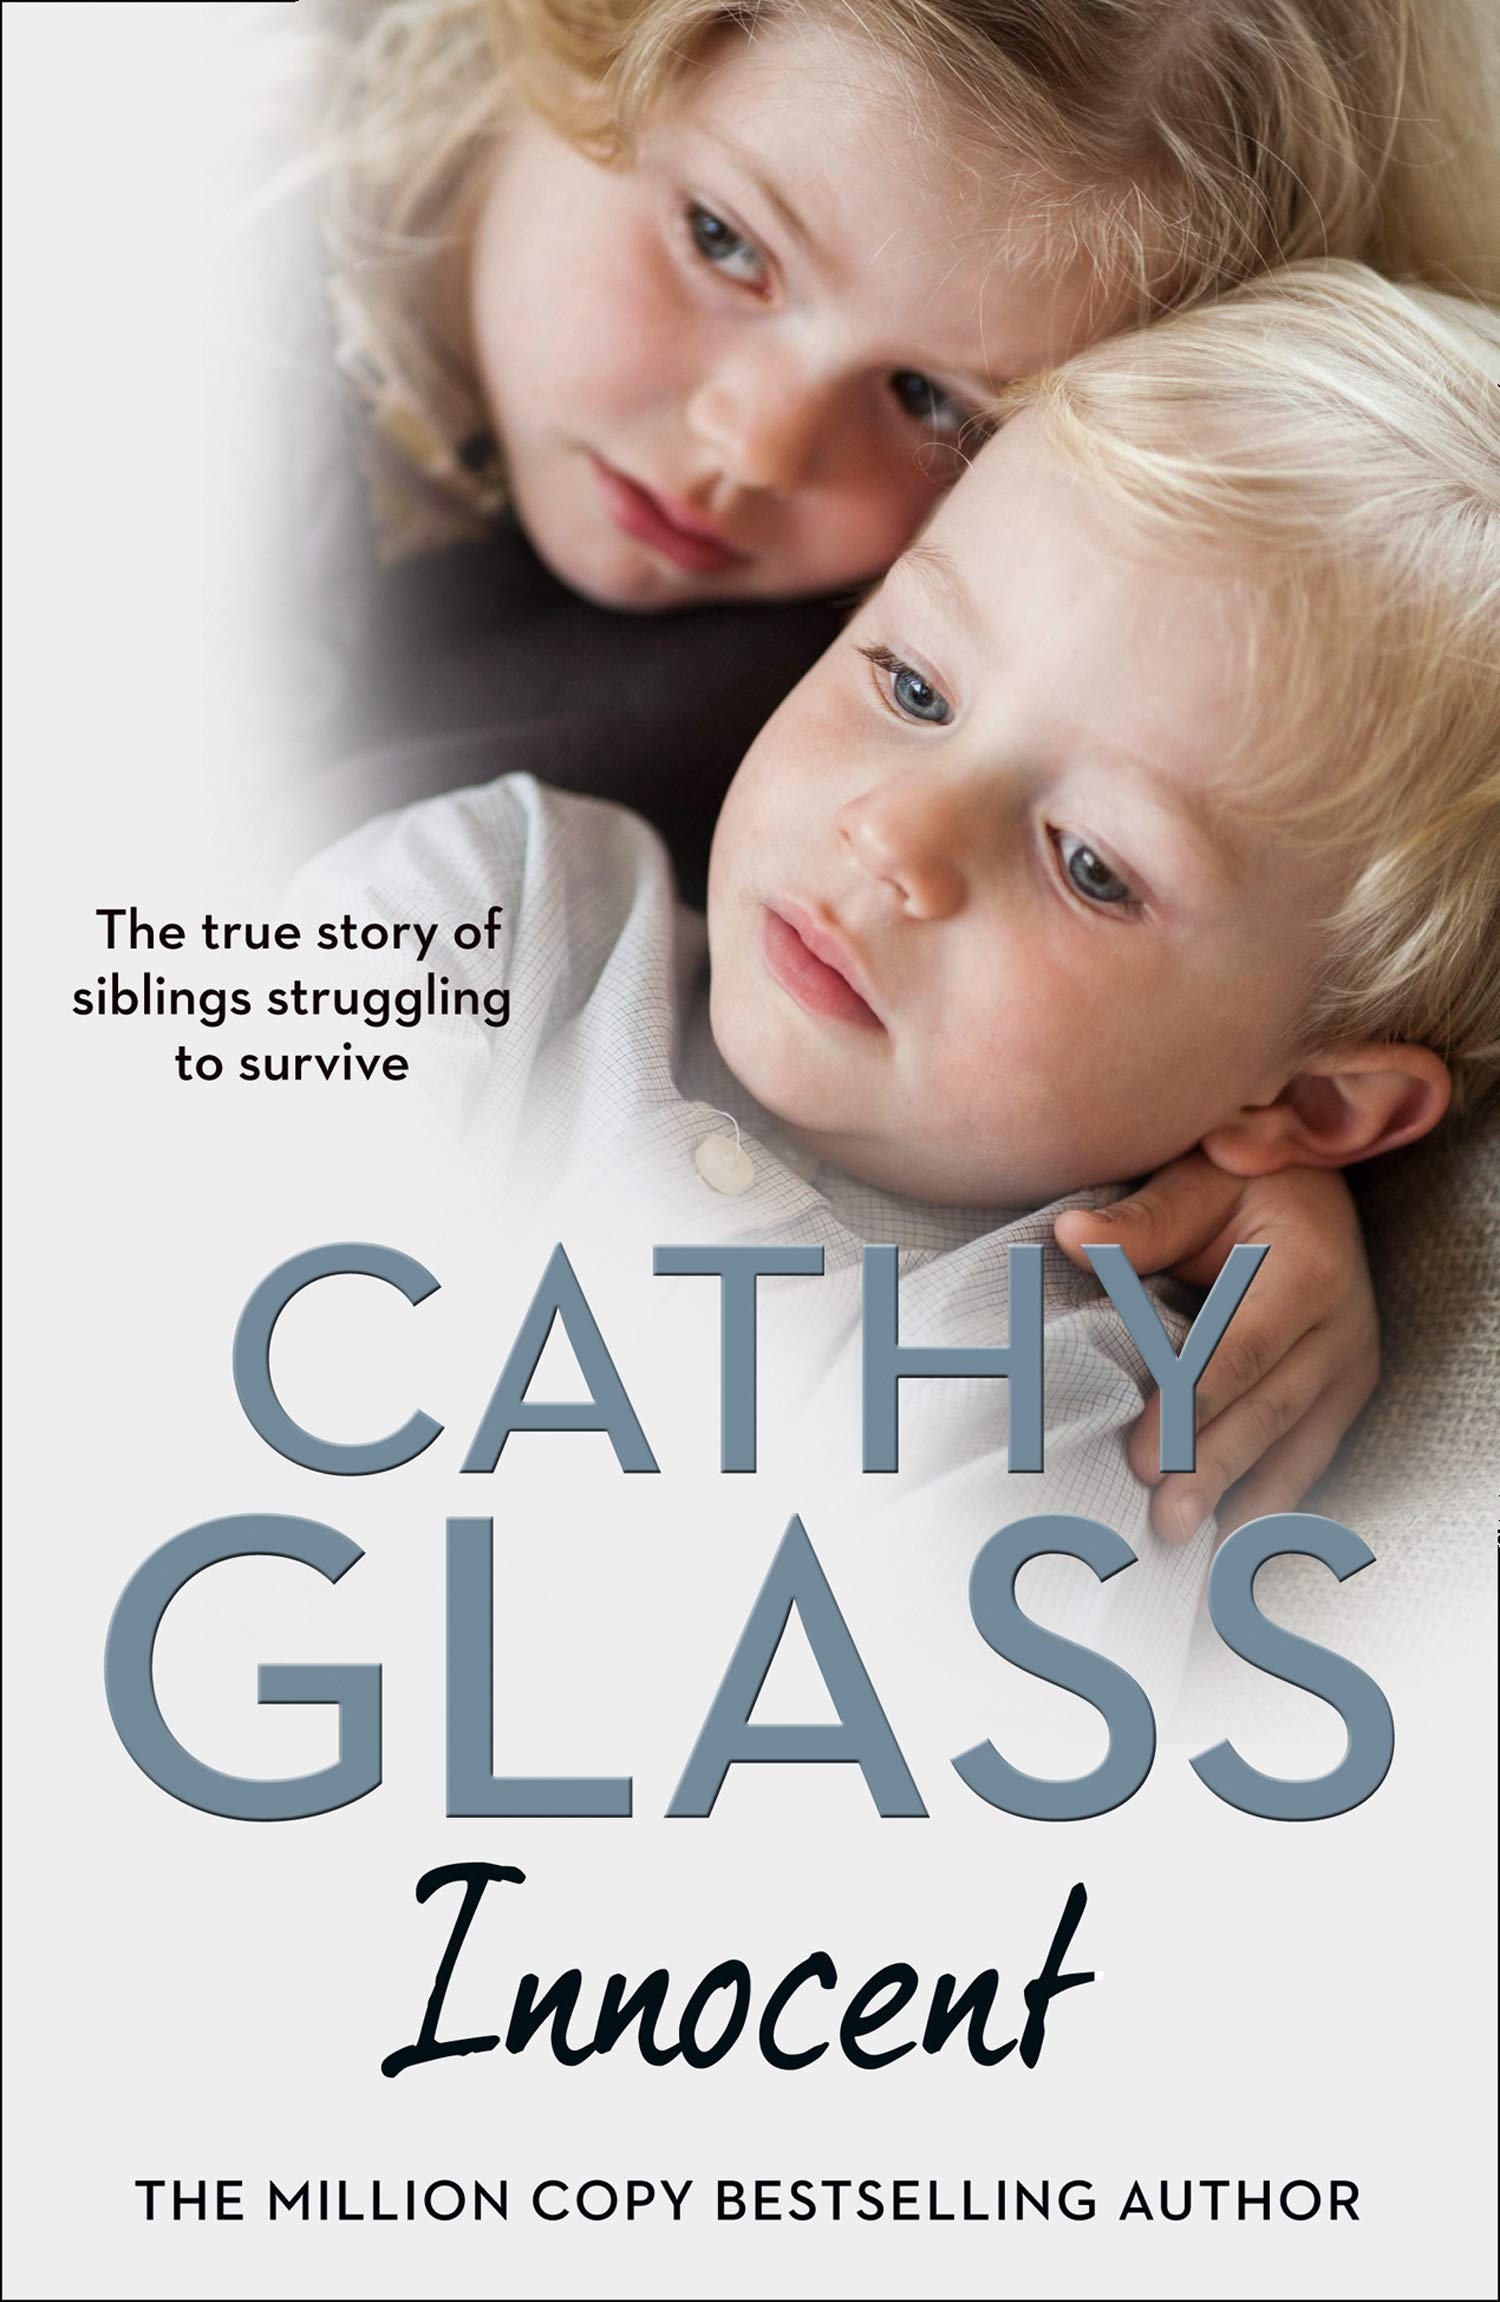 cathy glass innocent.jpg